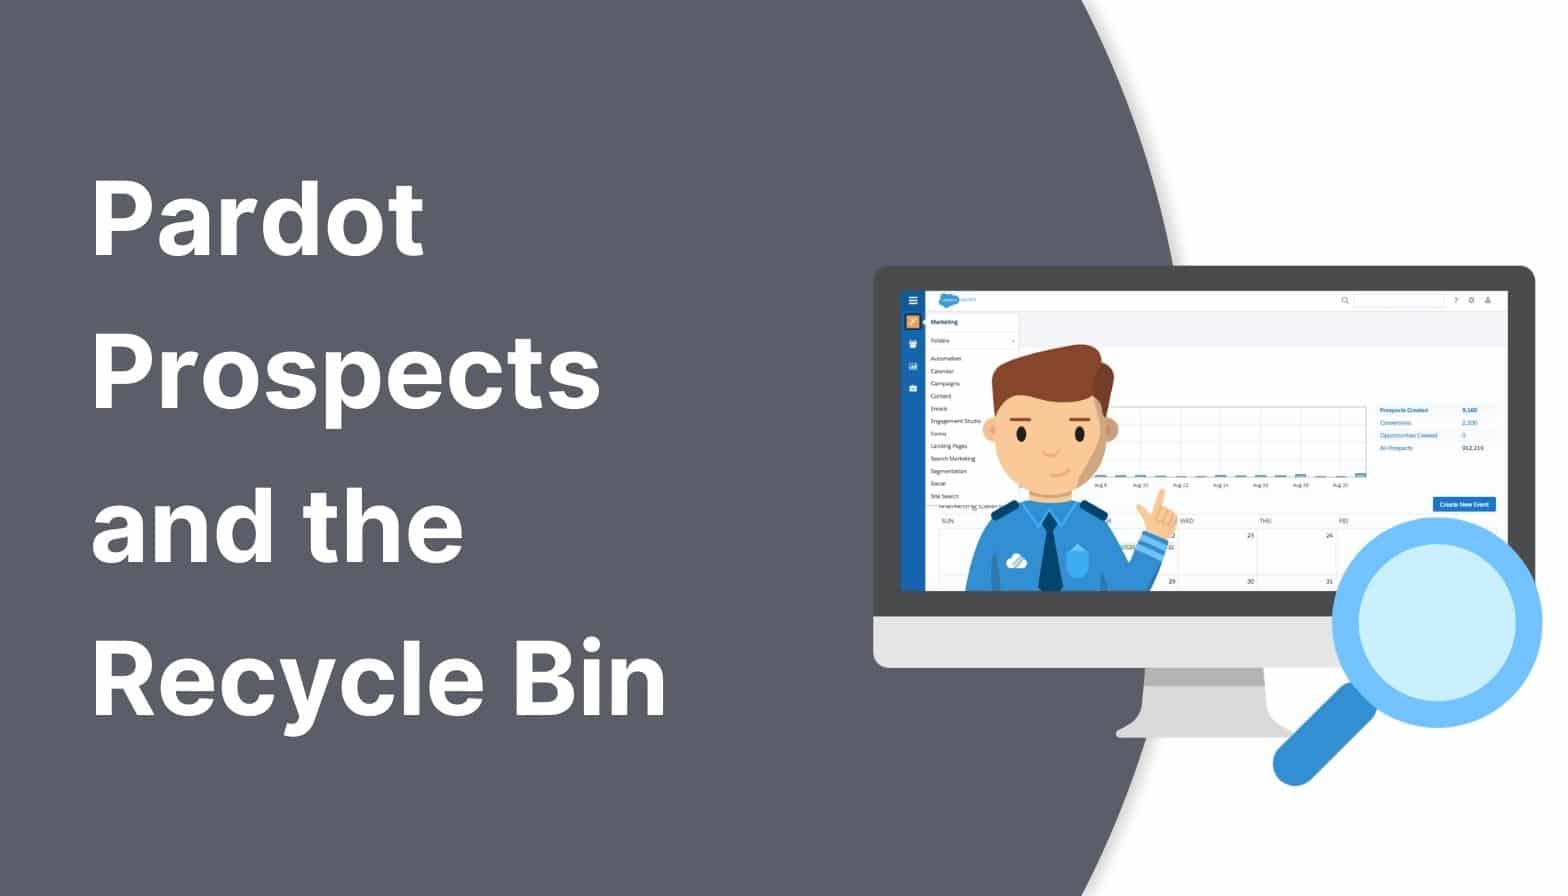 Pardot prospects and the recycle bin